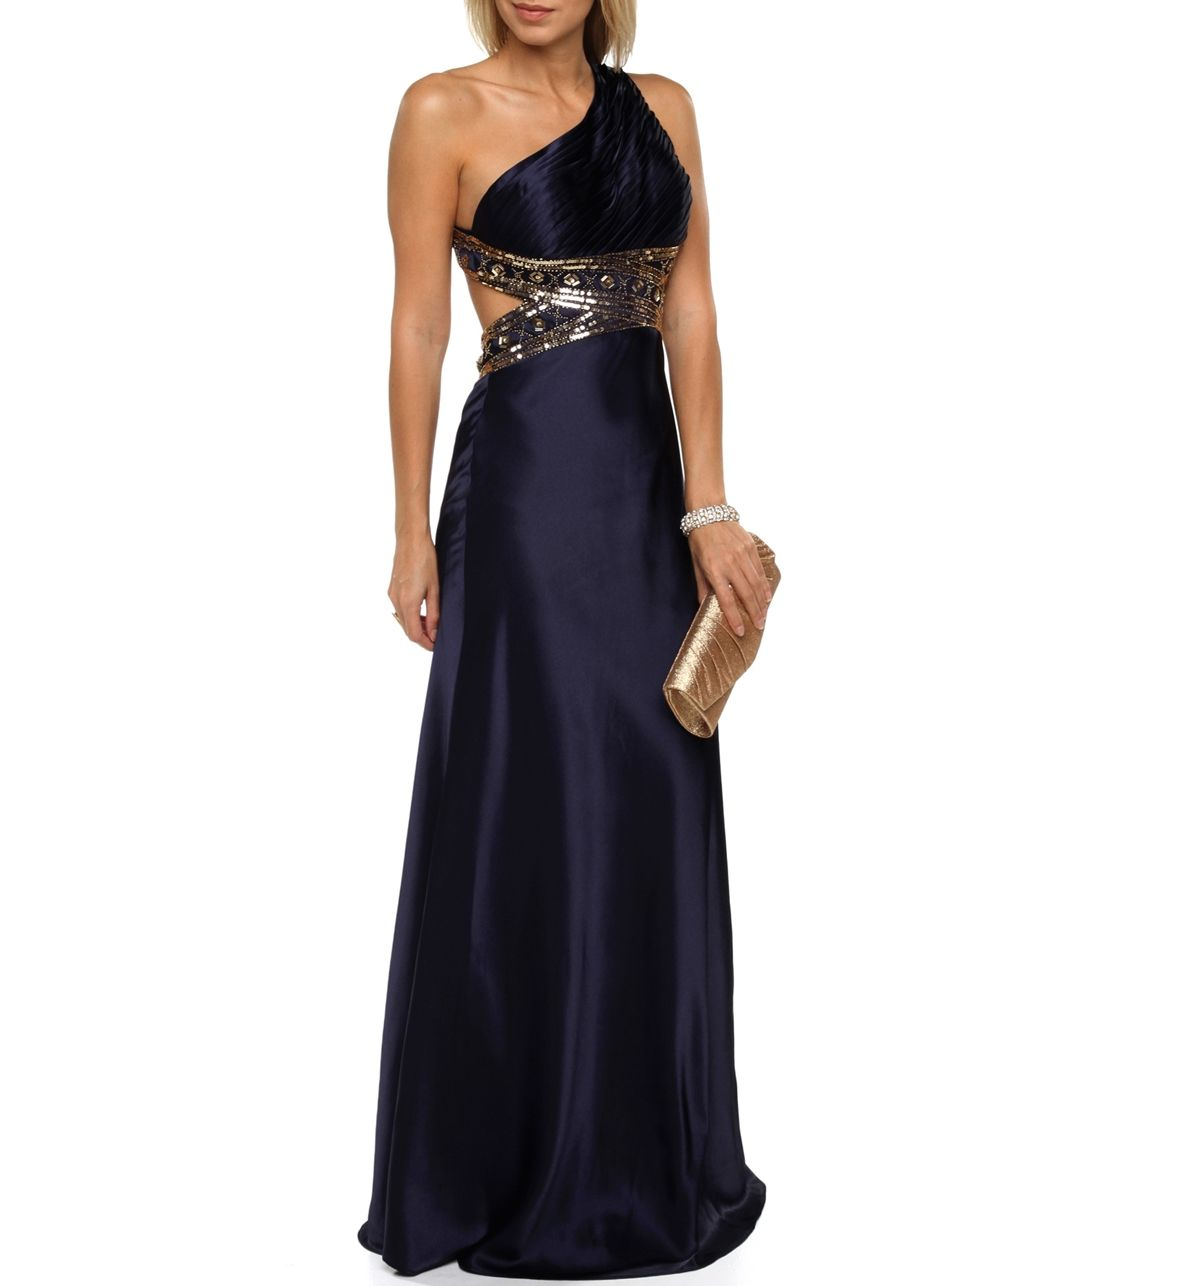 Cleopatra navy homecoming dress dresses pinterest cleopatra